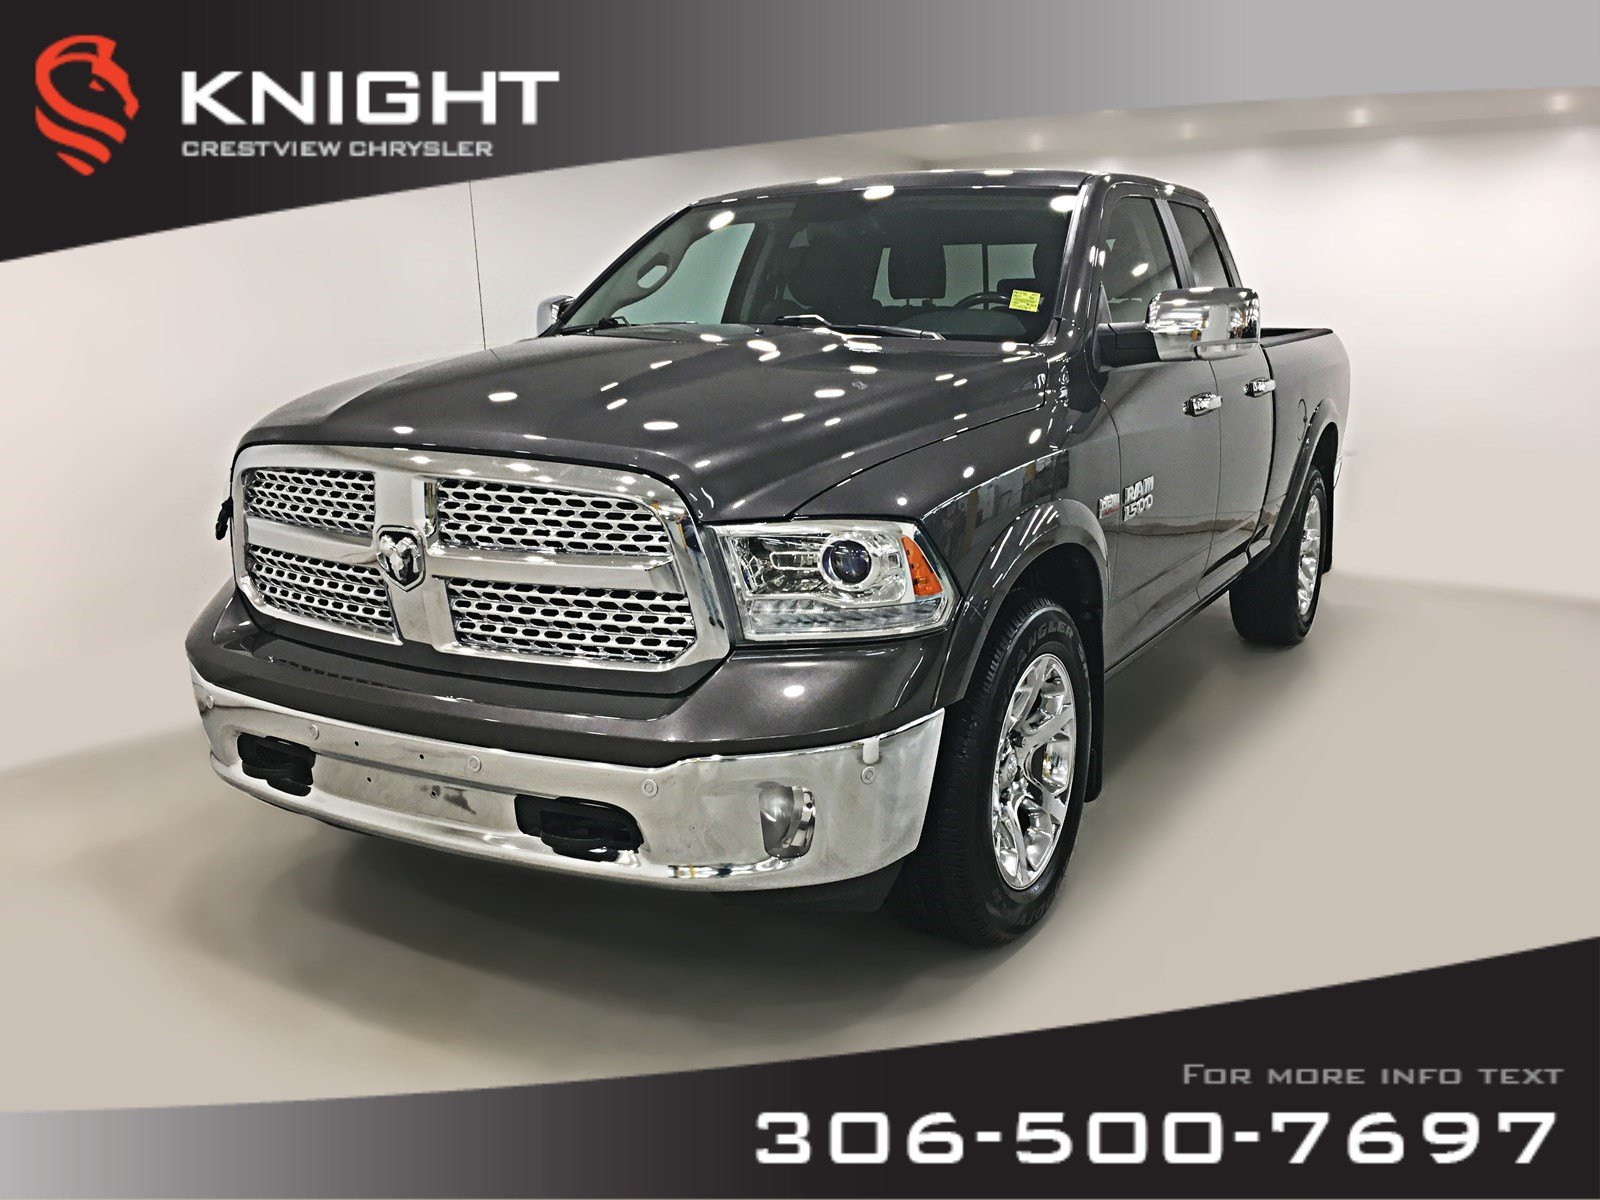 2016 Ram 1500 Laramie Quad Cab | Ventilated Seats | Navigation | 4WD Quad Cab 140.5 Laramie